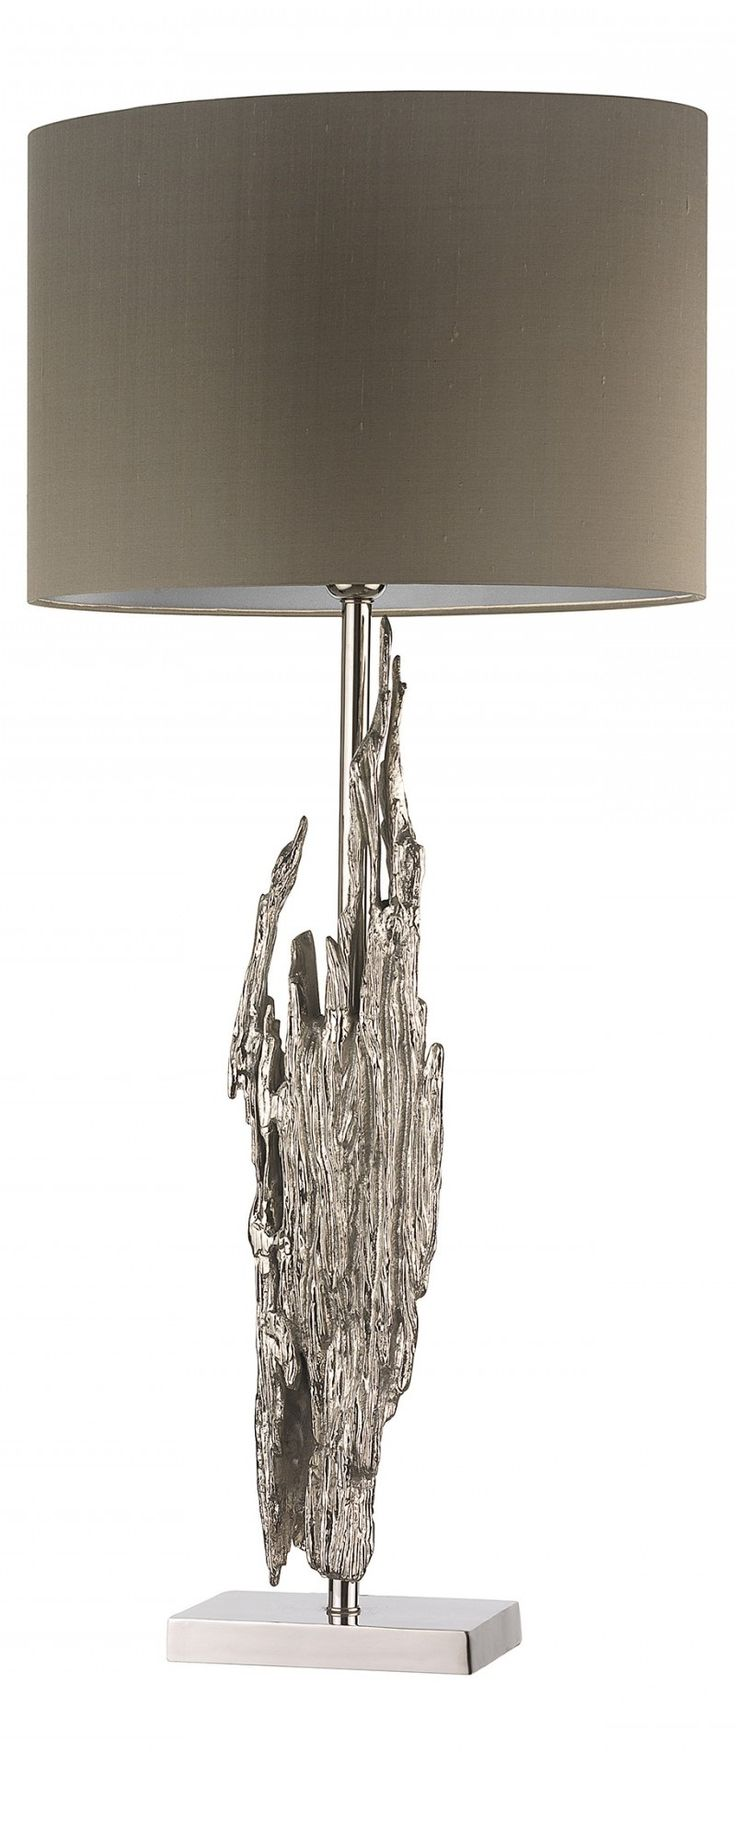 Top 25+ best Modern table lamps ideas on Pinterest | Table lamp ...